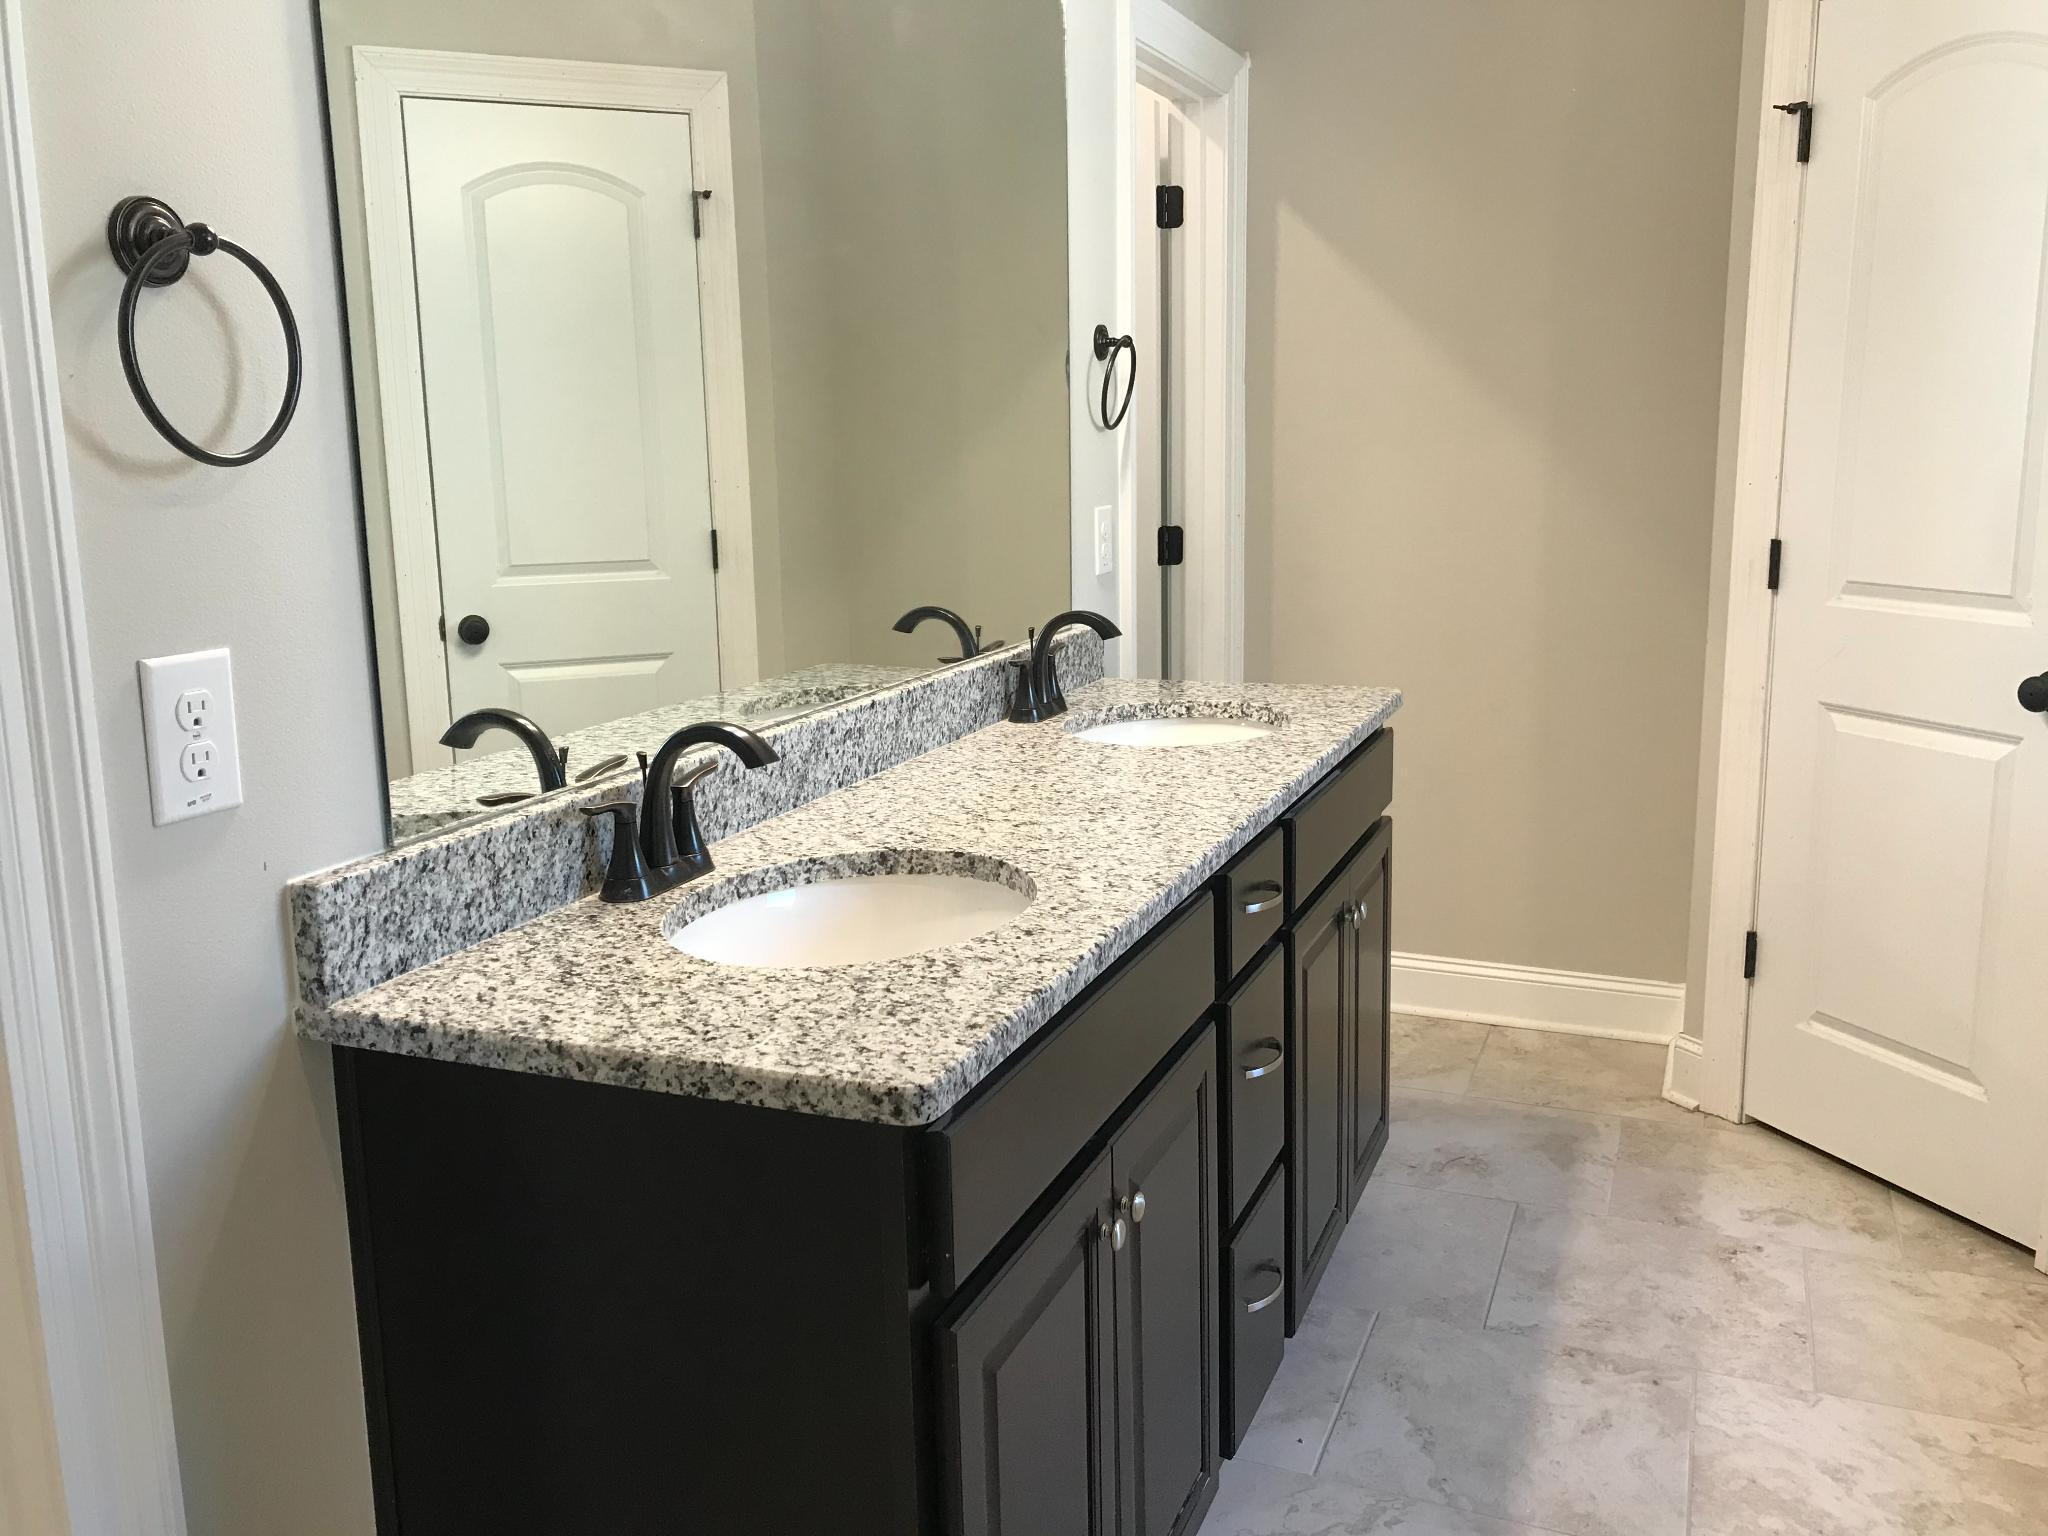 Bathroom featured in the Rose IV B By DSLD Homes - Louisiana in Monroe, LA